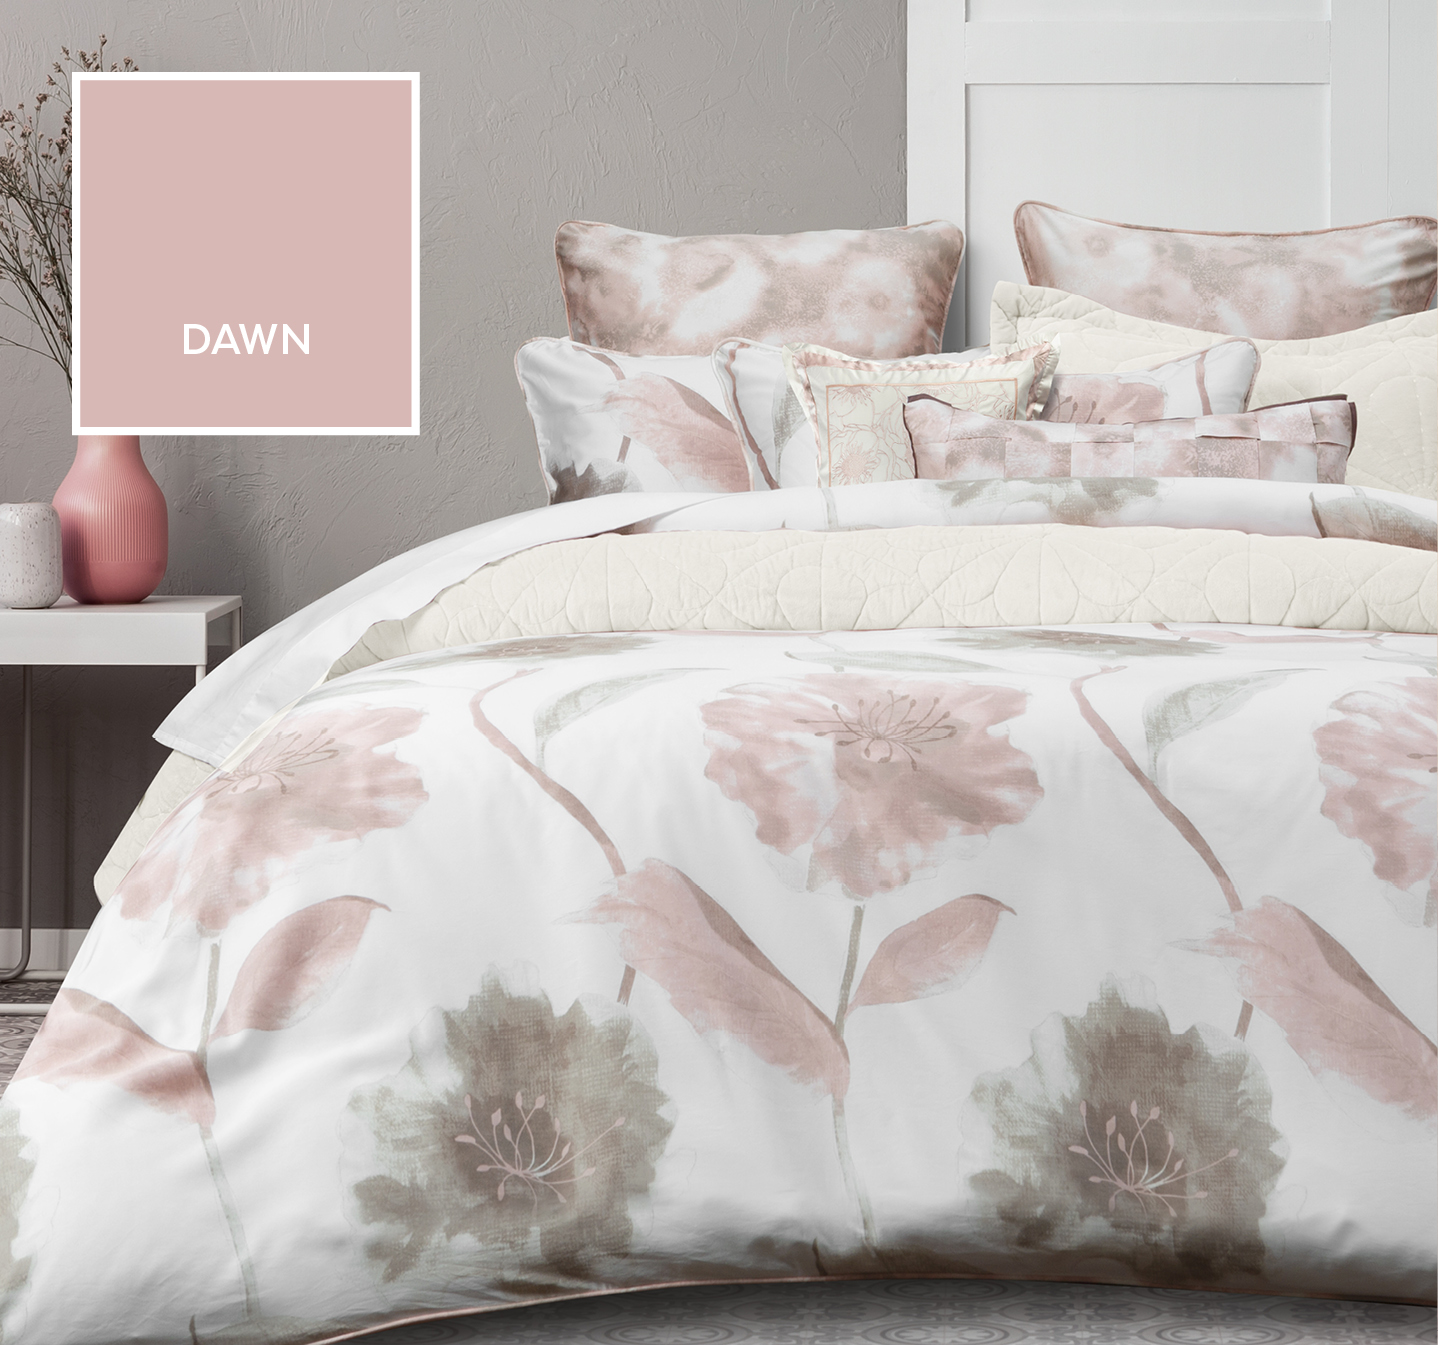 Dawn Duvet Cover with Pink Blooms